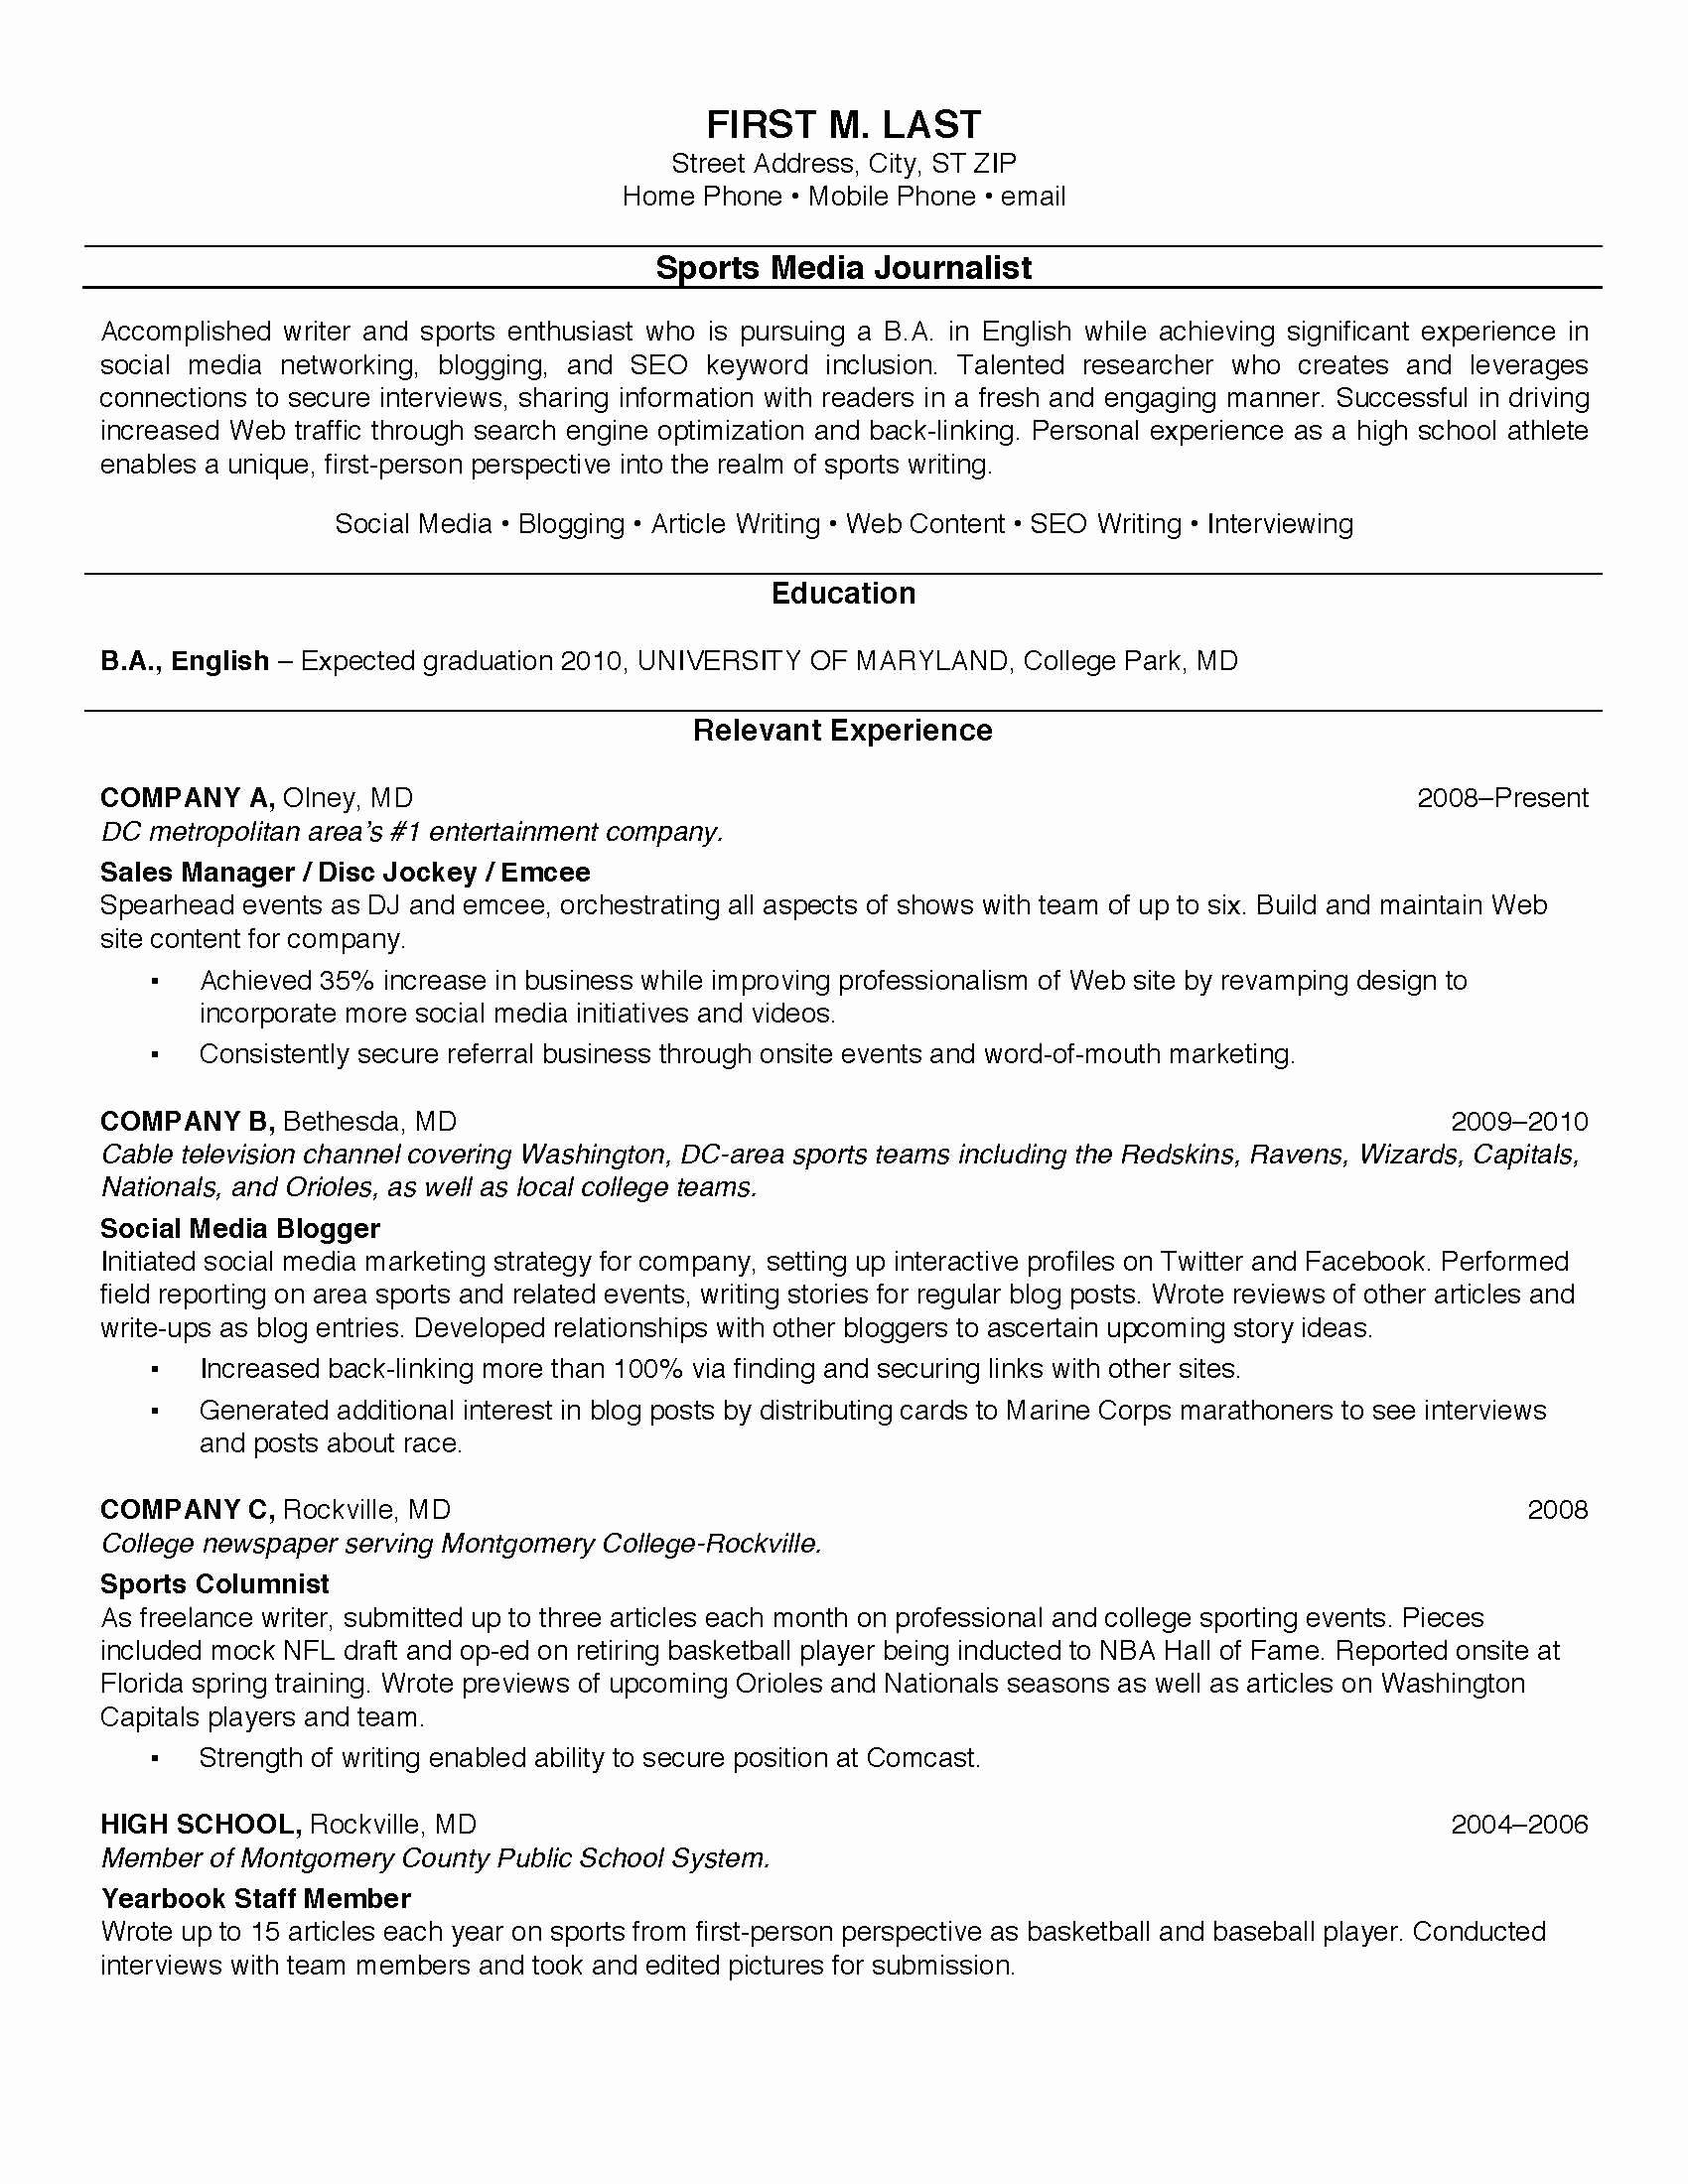 Resume Templates for College Students Luxury Pin by Jobresume On Resume Career Termplate Free